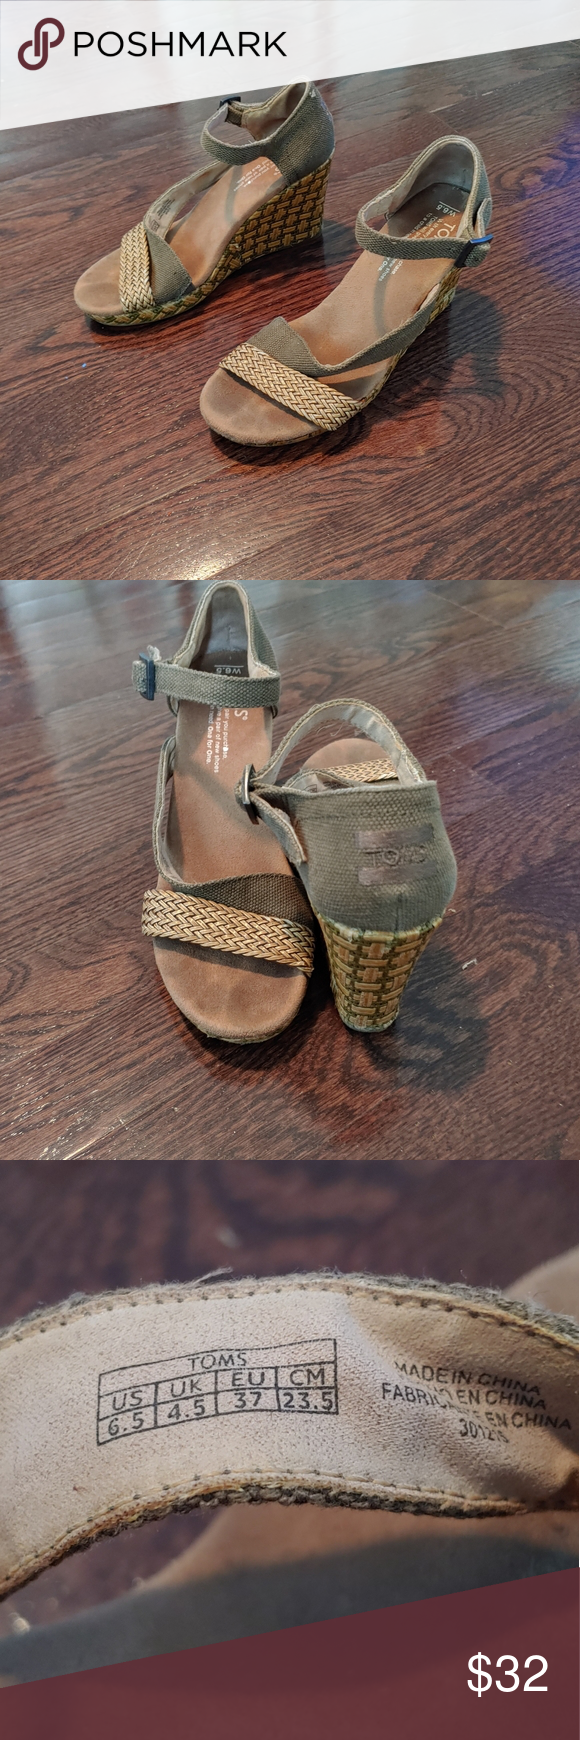 Toms wedges size:w6.5 Toms wedges size:w6.5 in good condition pre owned Toms Shoes Wedges #tomwedges Toms wedges size:w6.5 Toms wedges size:w6.5 in good condition pre owned Toms Shoes Wedges #tomwedges